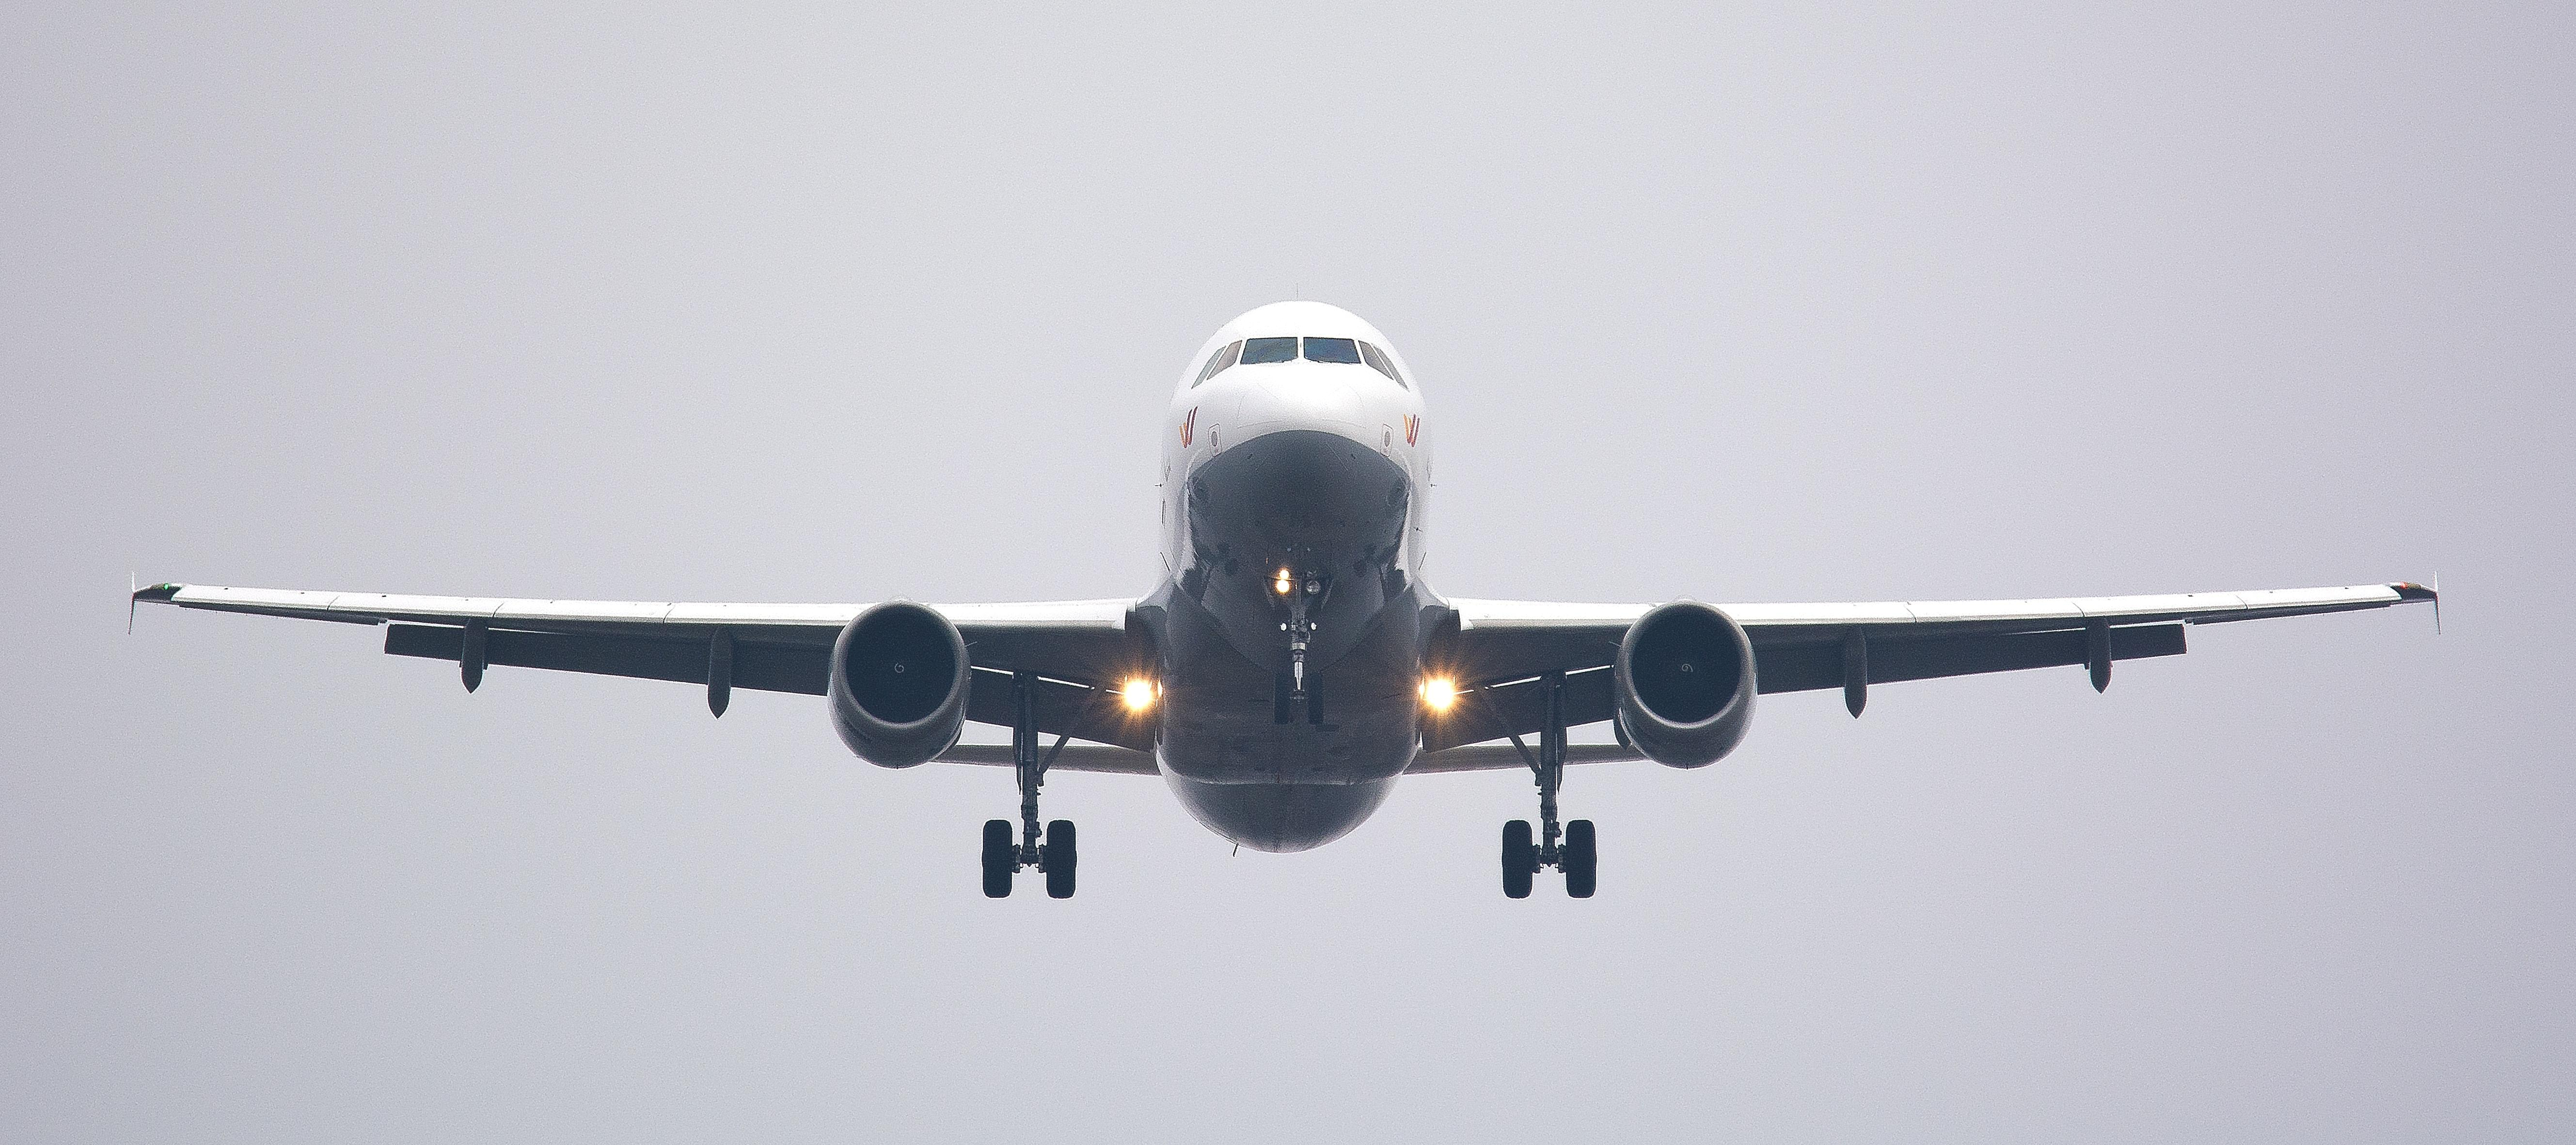 Cheap, Non-stop Flights Coming Soon to FWB